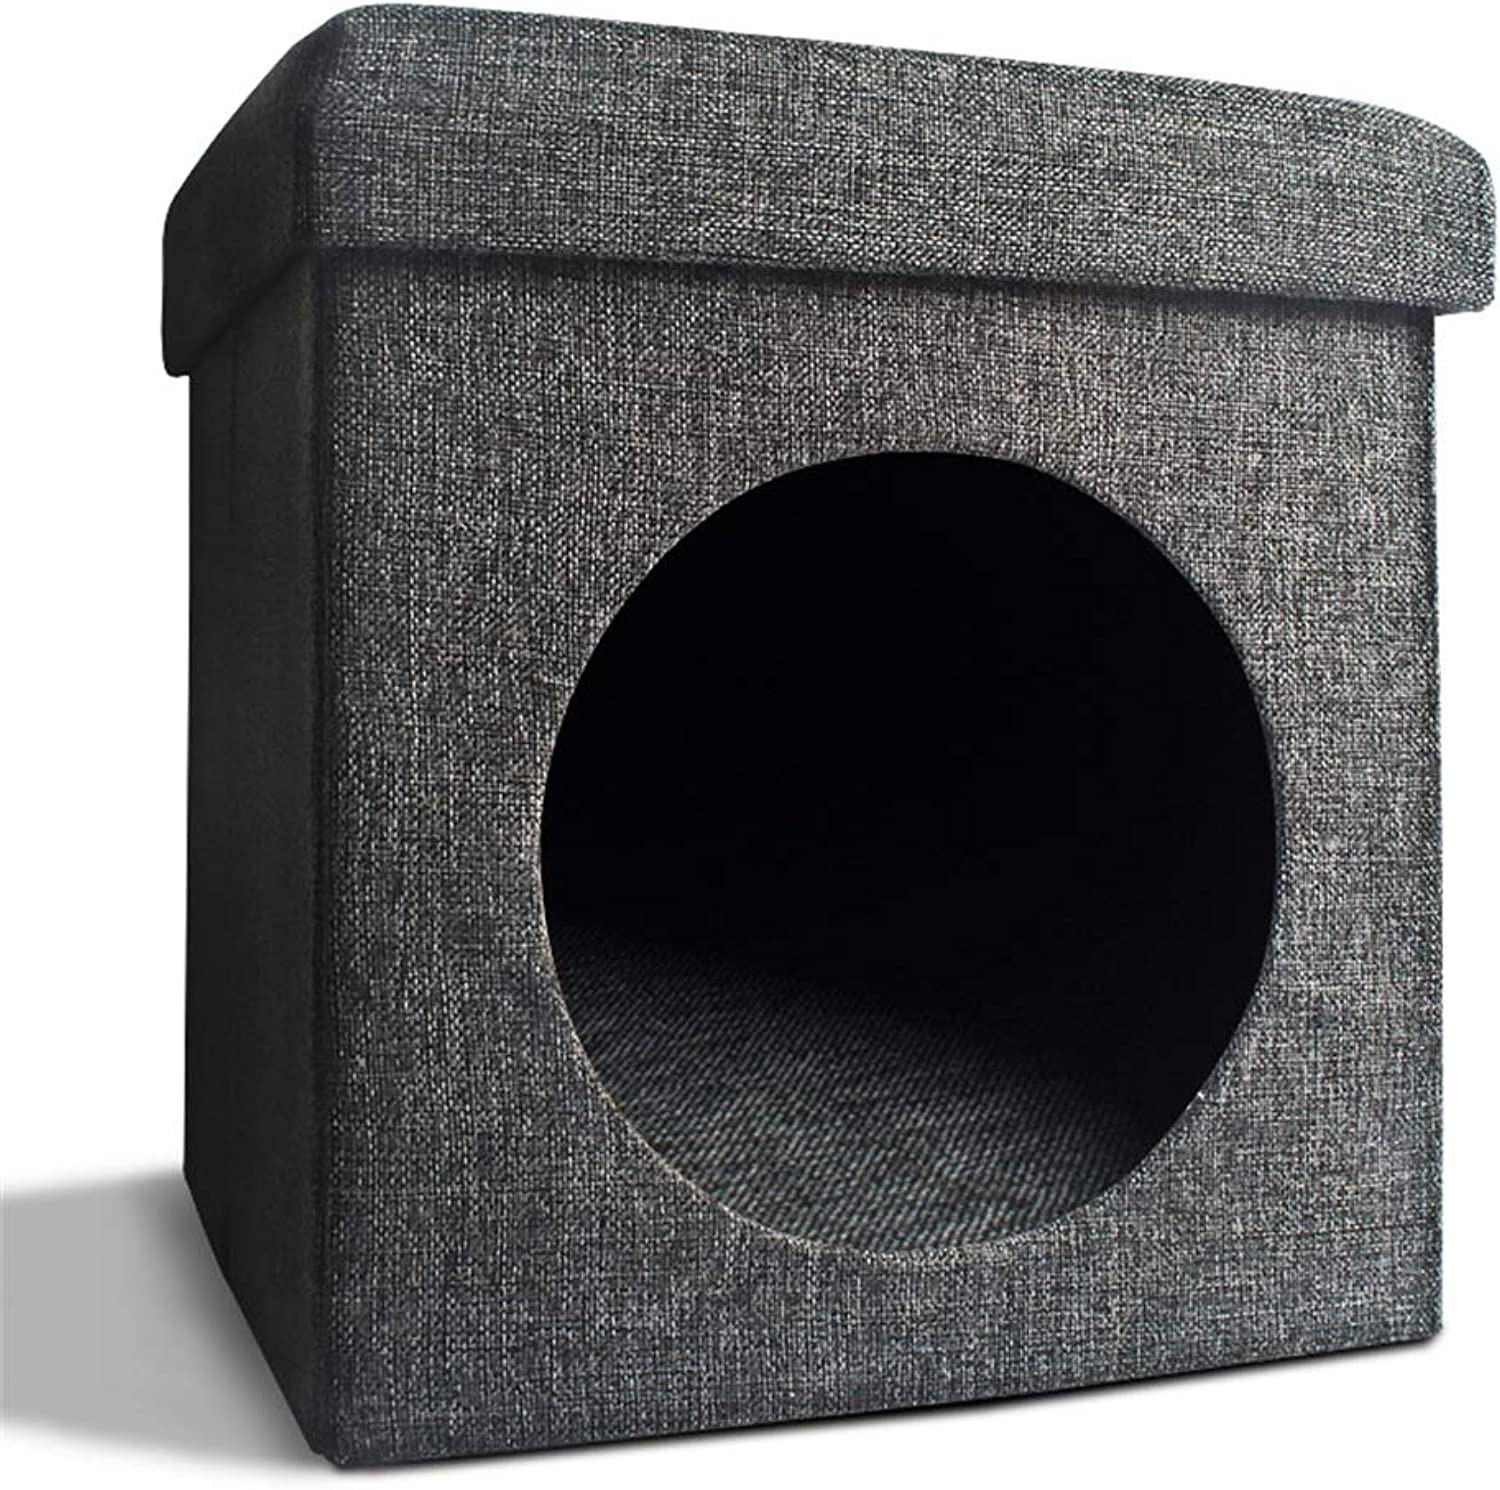 LIULAOHAN Pet musthave items Firm square cat hole nest creative folding sofa small stool living room cat hole nest closed cat litter cat room cat stool pet supplies (color   A)